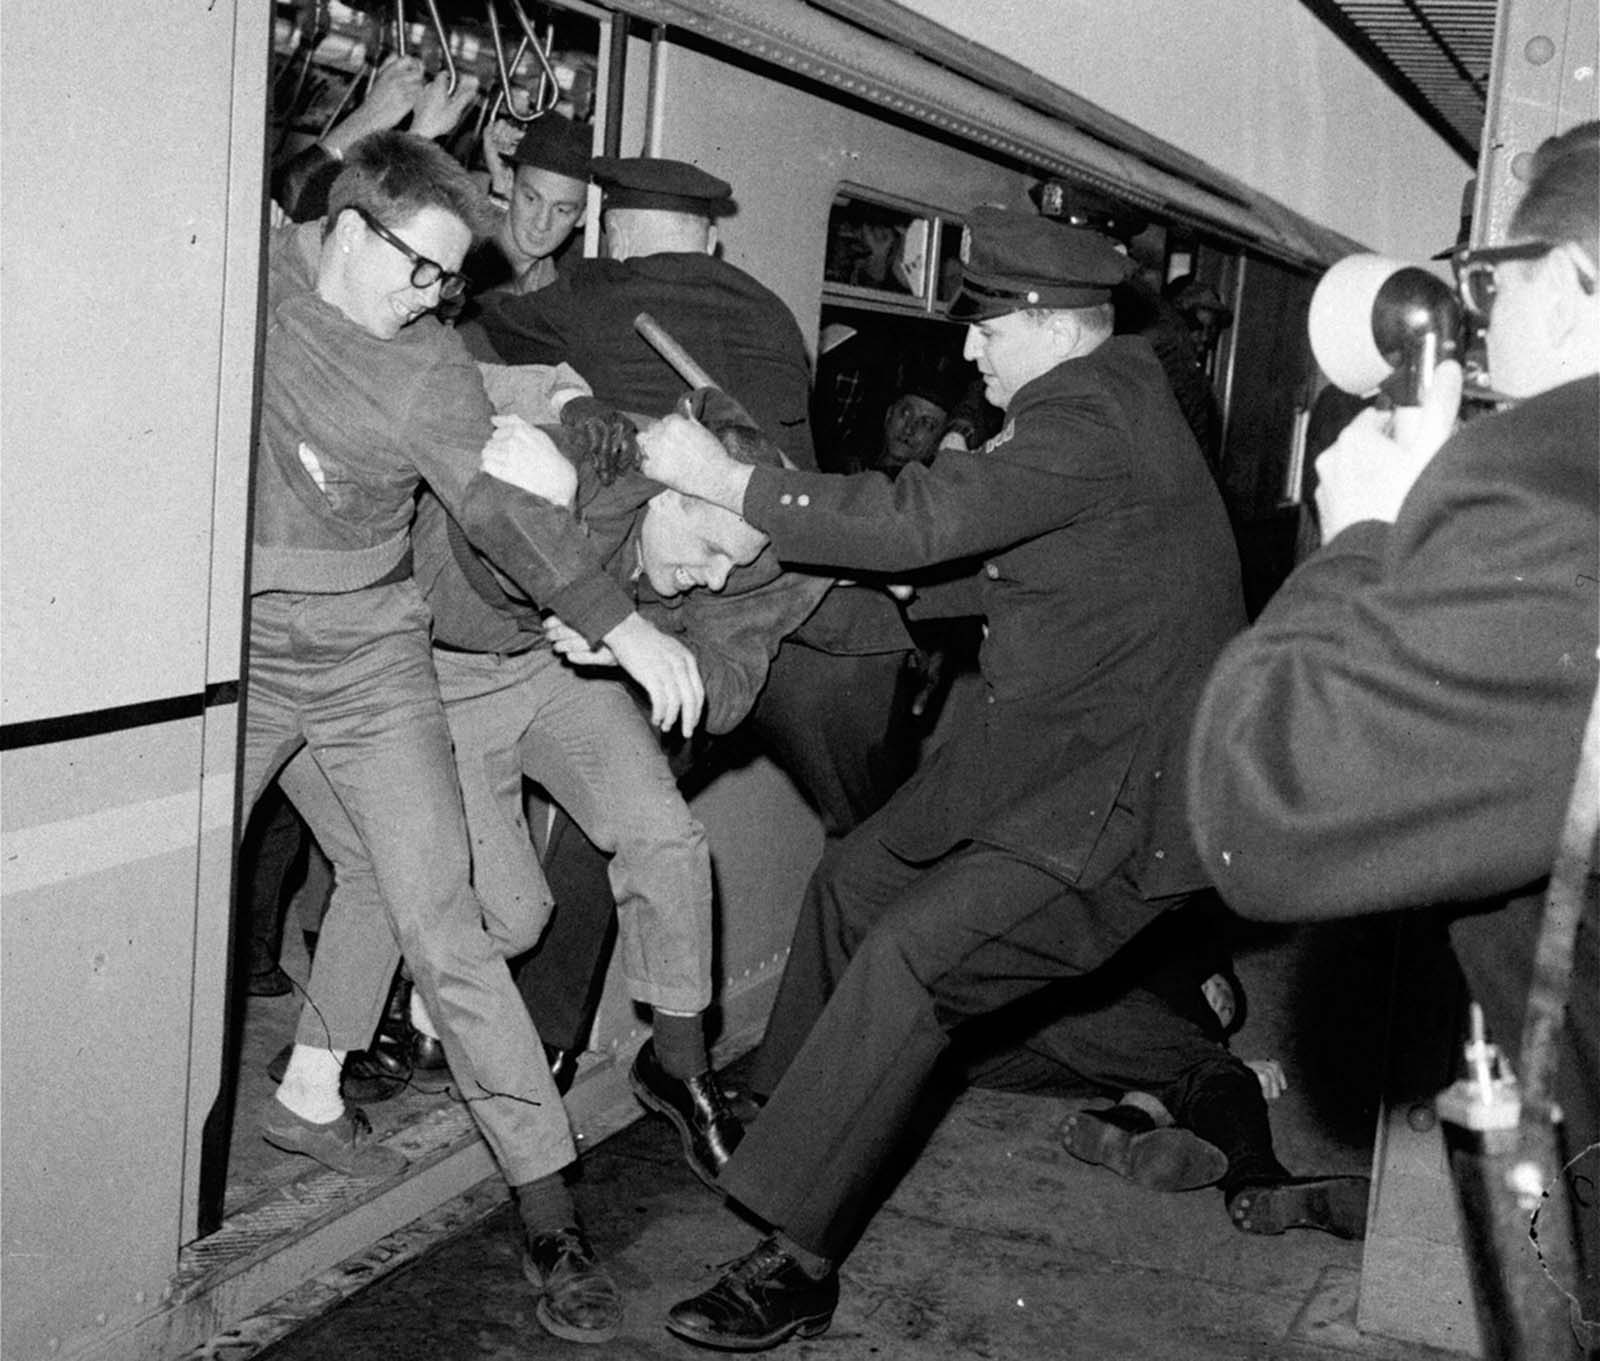 New York City policemen tangle with demonstrators at a subway station on the opening day of the New York World's Fair, April 22, 1964. Youths attempted to stall the train, which was headed from the city to the fairgrounds, as a form of protest on behalf of civil rights for blacks.